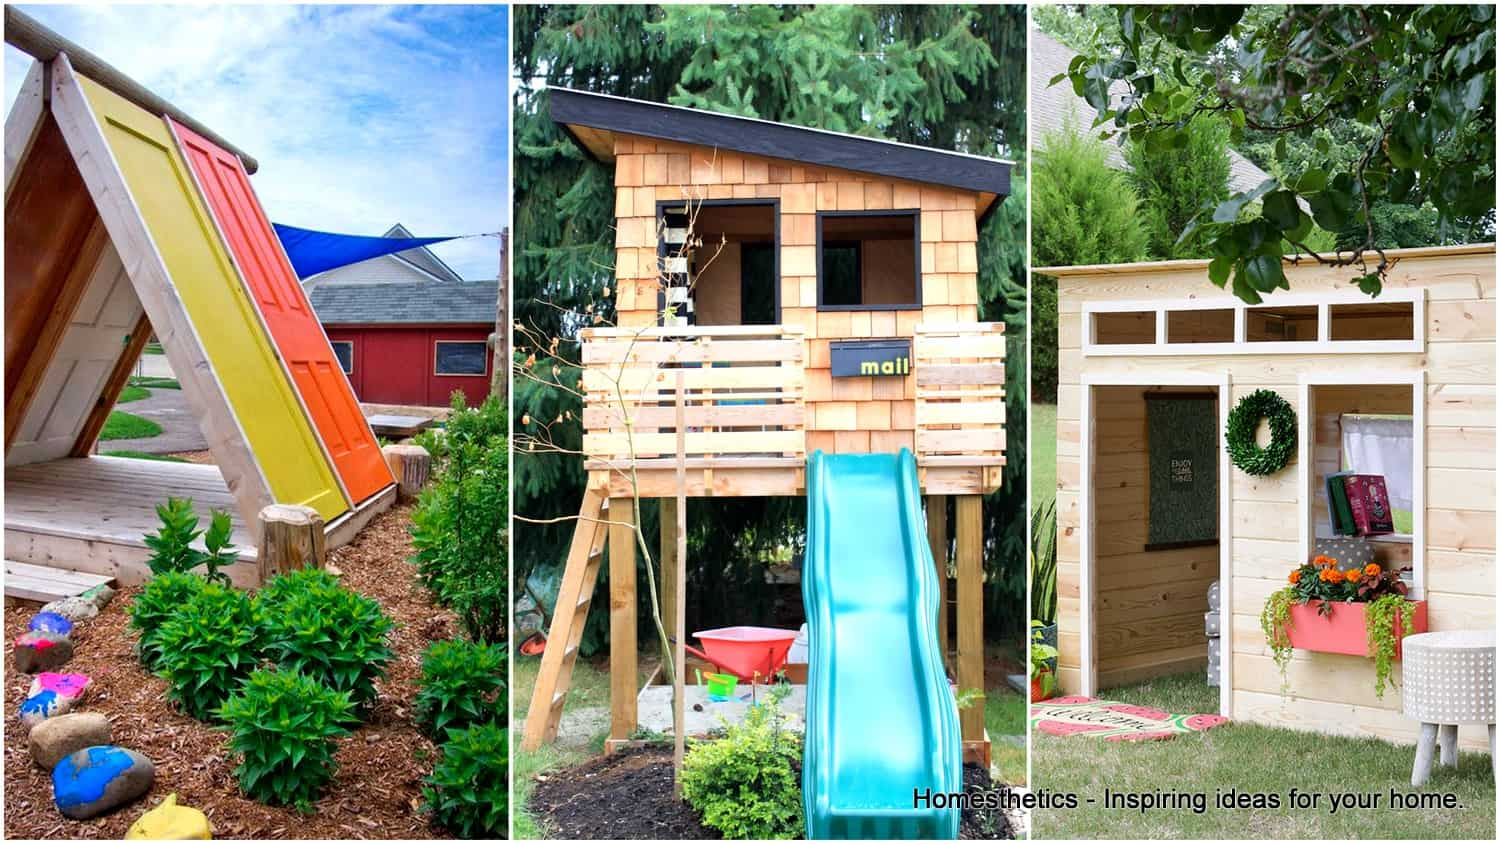 43 Free DIY Playhouse Plans That Children & Parents Alike Will Construction Toddler Backyard Ideas on toddler spring ideas, toddler photography ideas, toddler storage ideas, toddler room ideas, toddler birthday ideas, toddler christmas ideas, toddler breakfast ideas, toddler painting ideas, toddler gardening ideas, toddler playground ideas, toddler pool juice ideas, toddler halloween ideas, toddler parties ideas, toddler art ideas, toddler party ideas, toddler craft ideas, toddler bed ideas, toddler closet ideas, toddler bathroom ideas, toddler bedroom ideas,